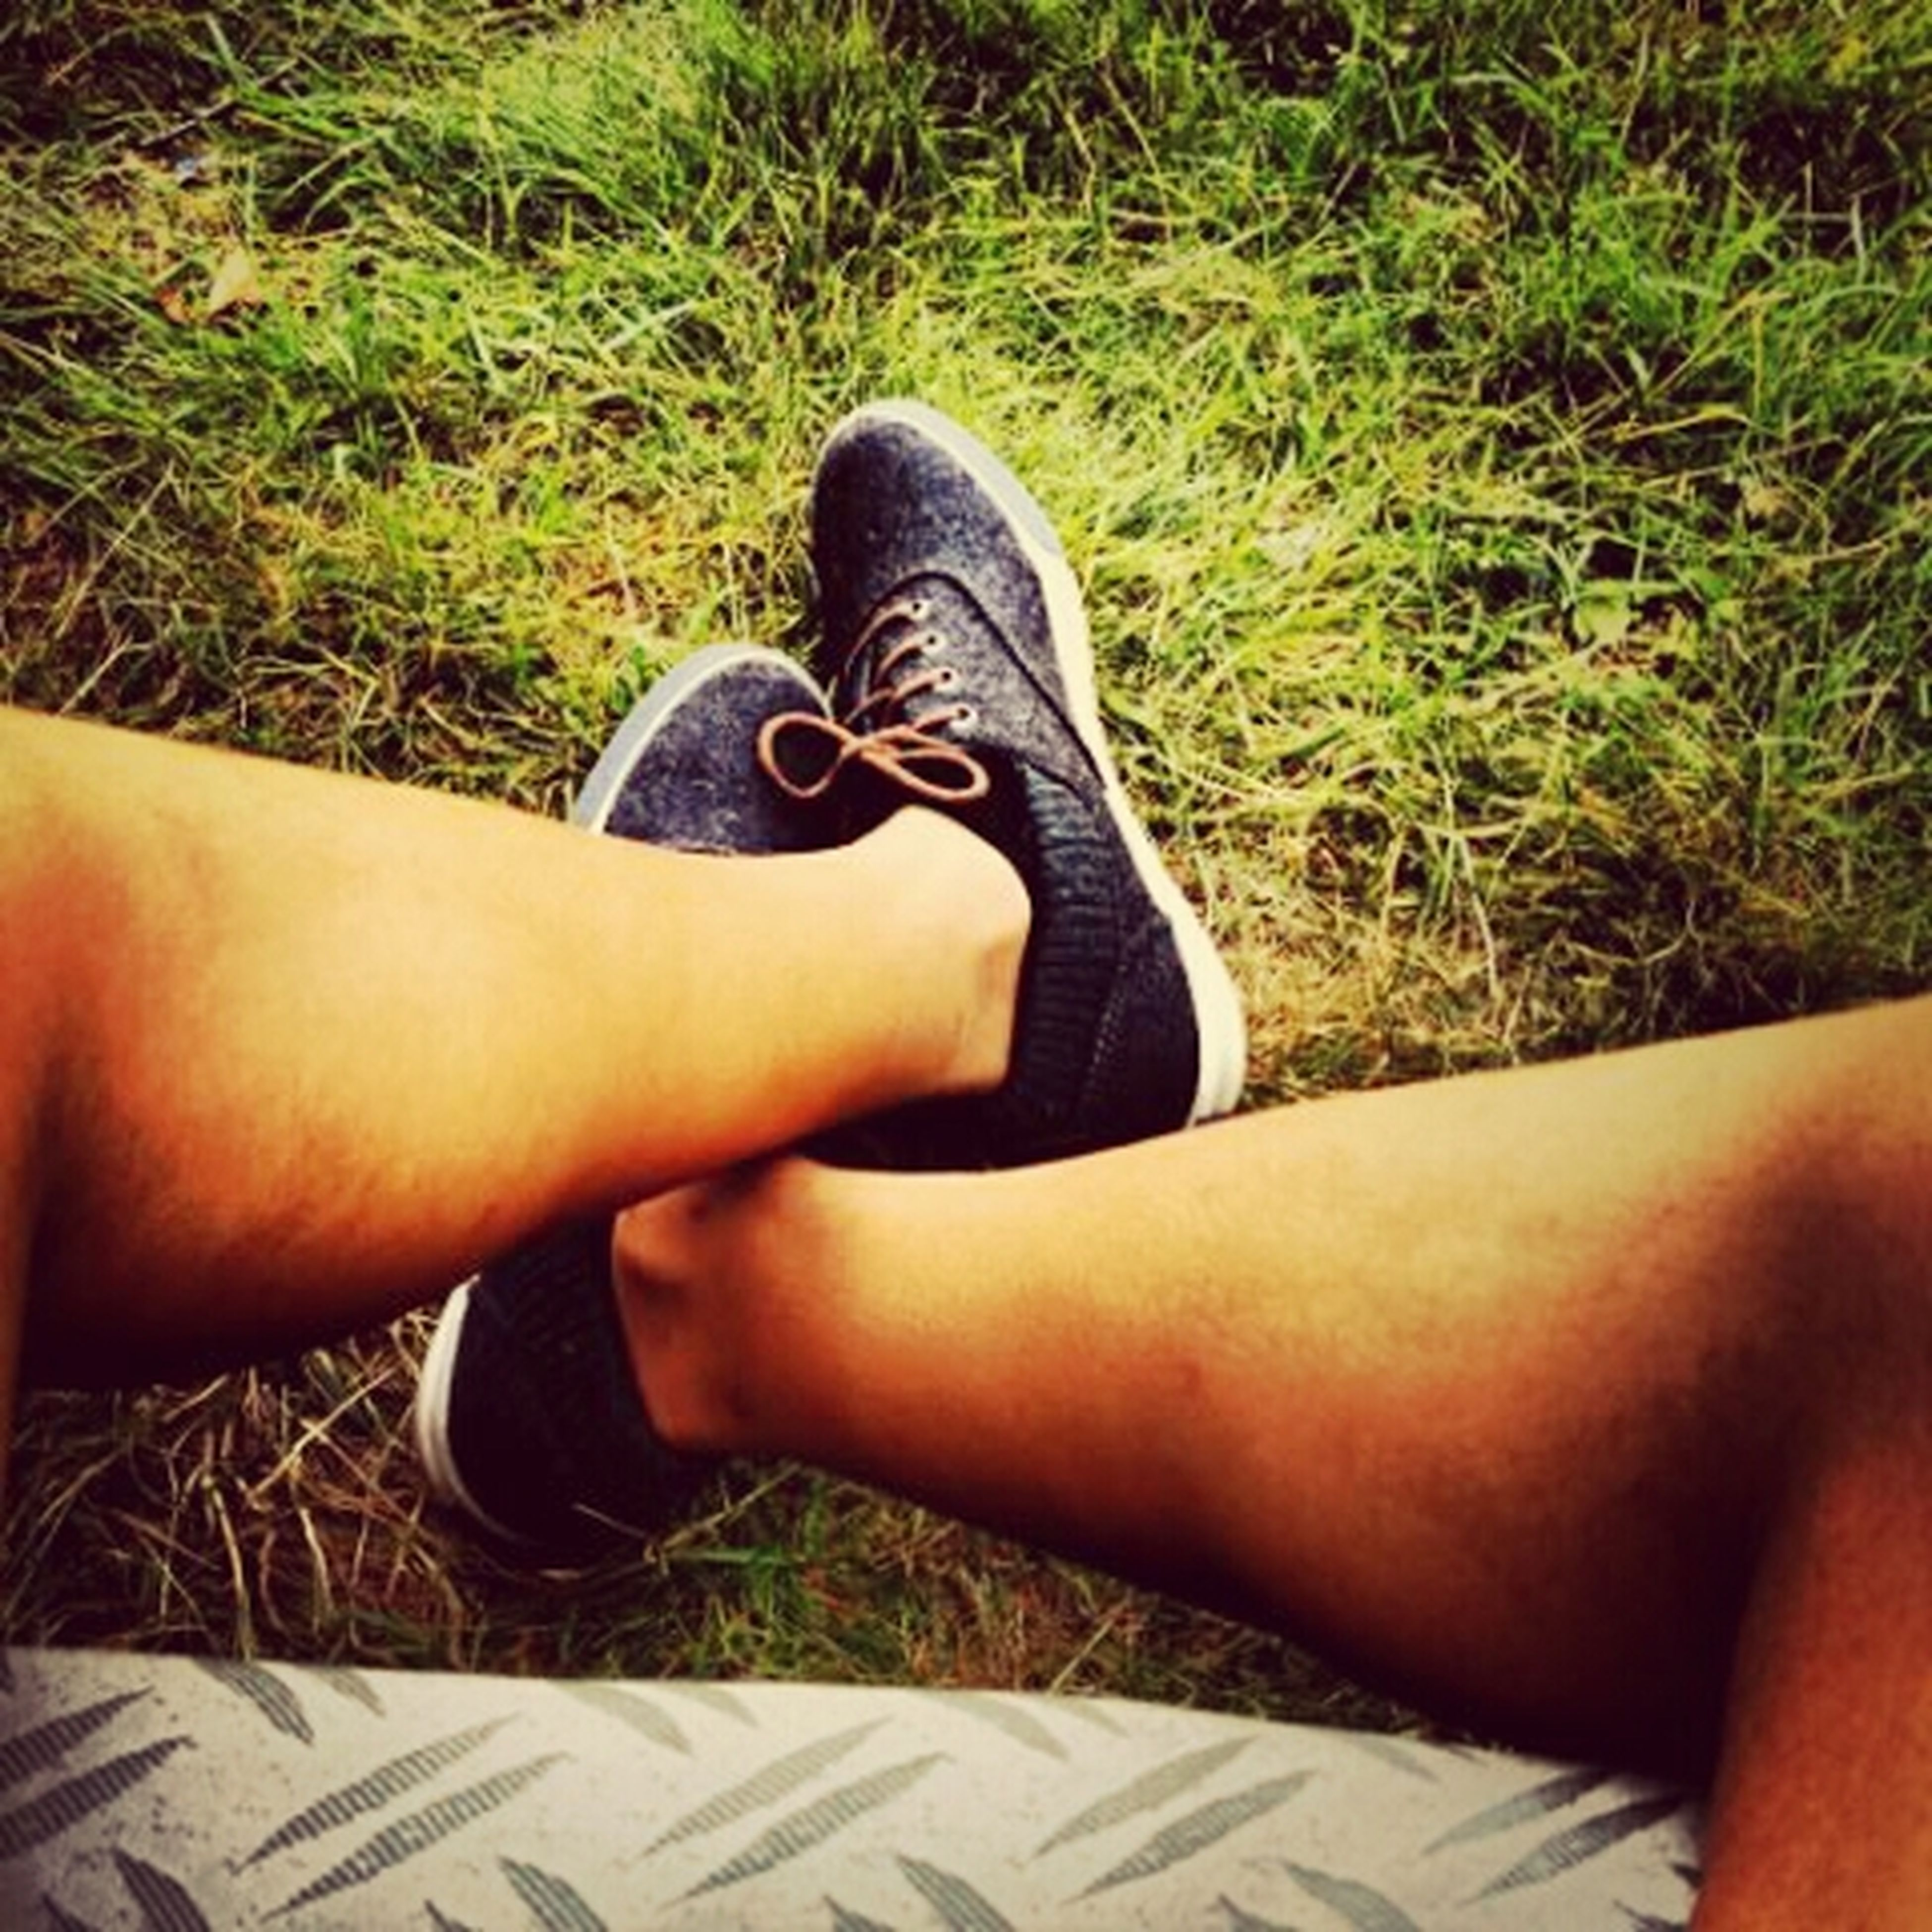 person, low section, personal perspective, lifestyles, leisure activity, shoe, grass, human foot, part of, relaxation, high angle view, legs crossed at ankle, men, footwear, sitting